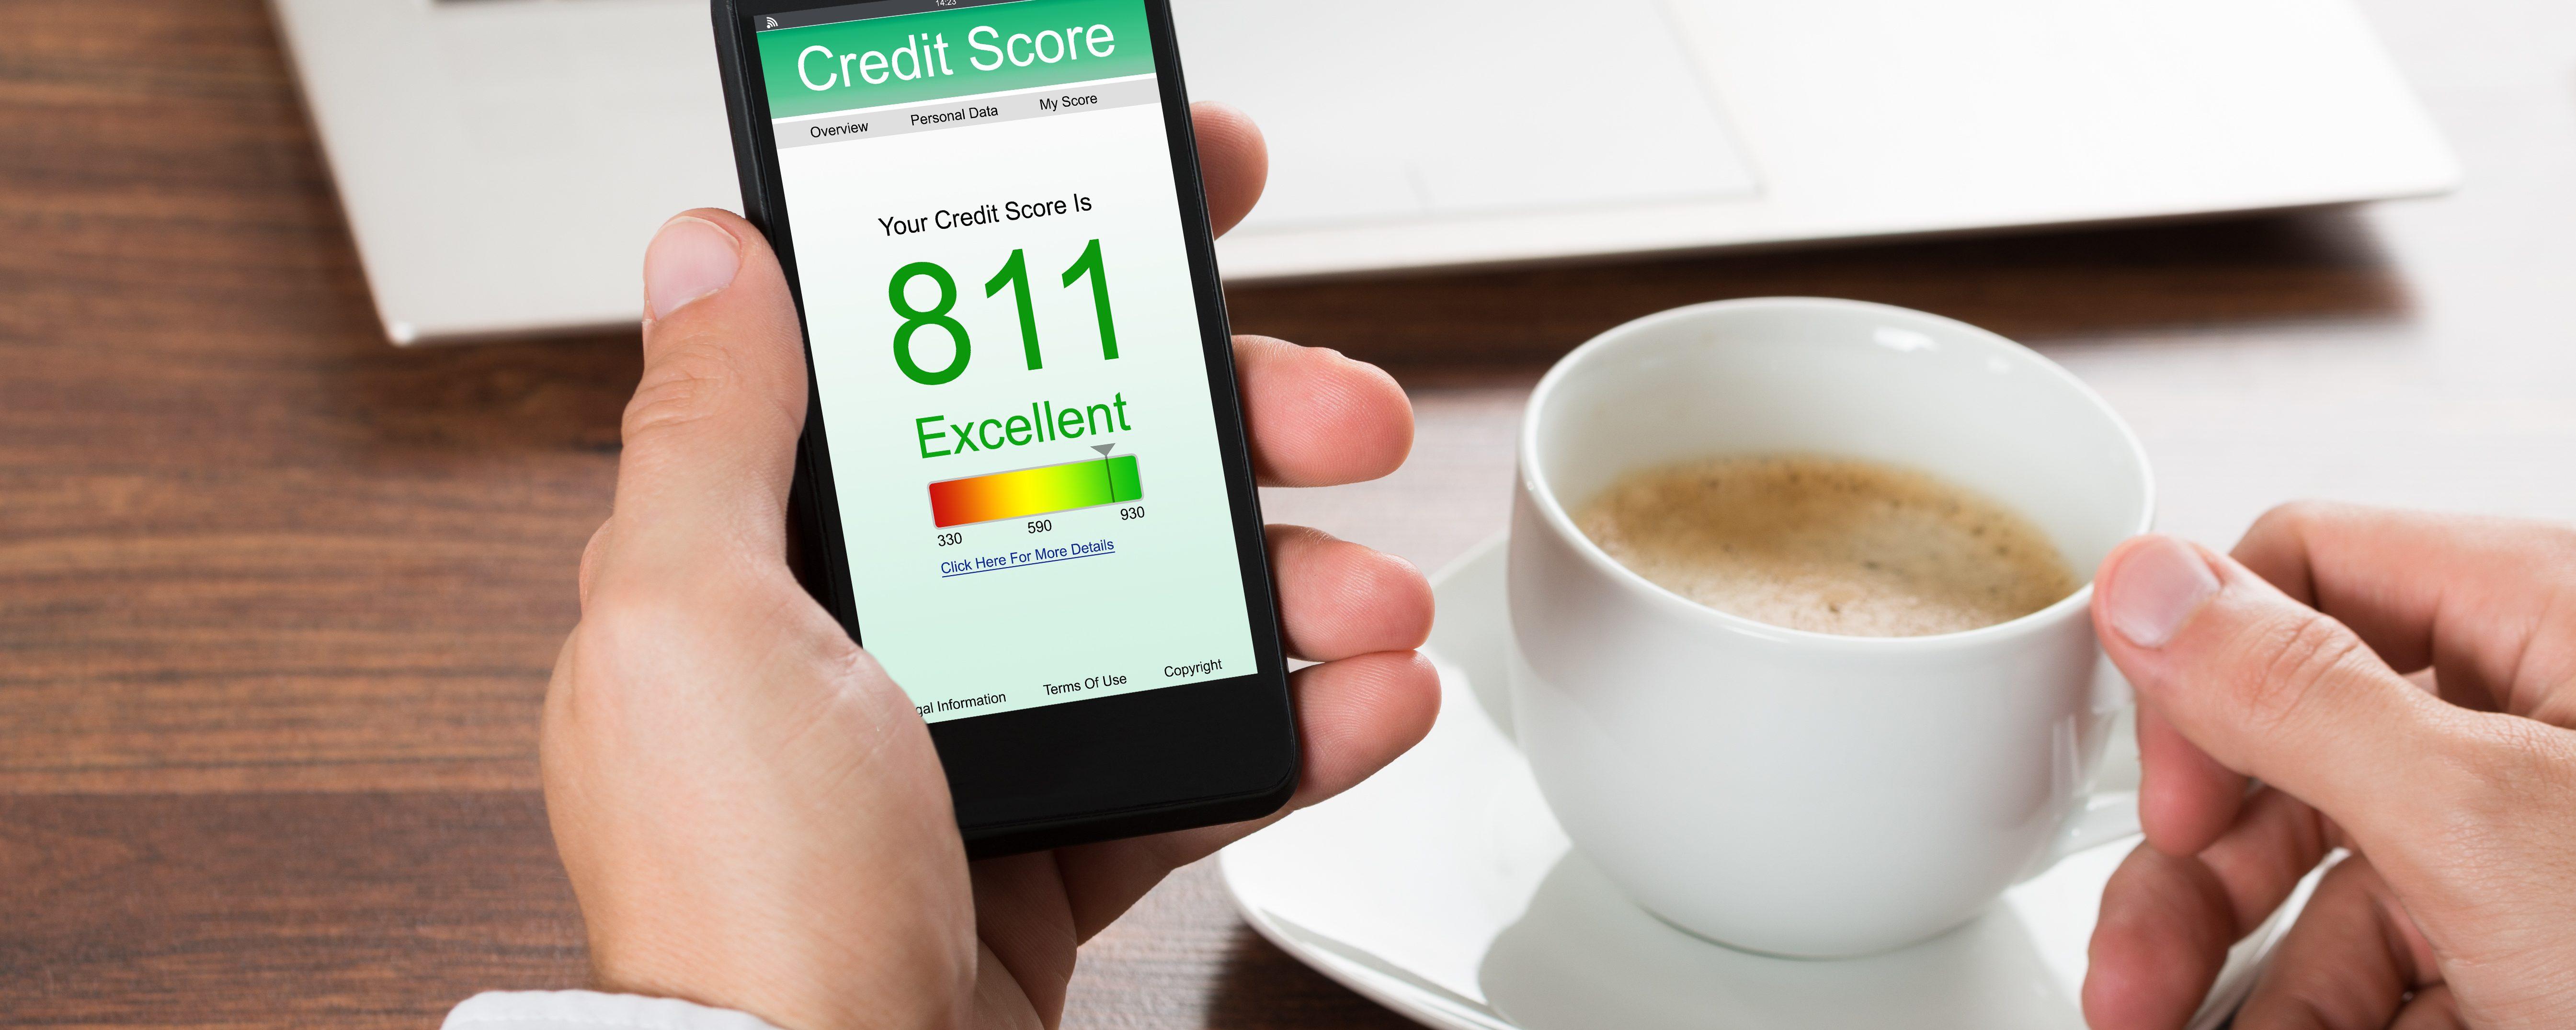 Edit Your Credit Course